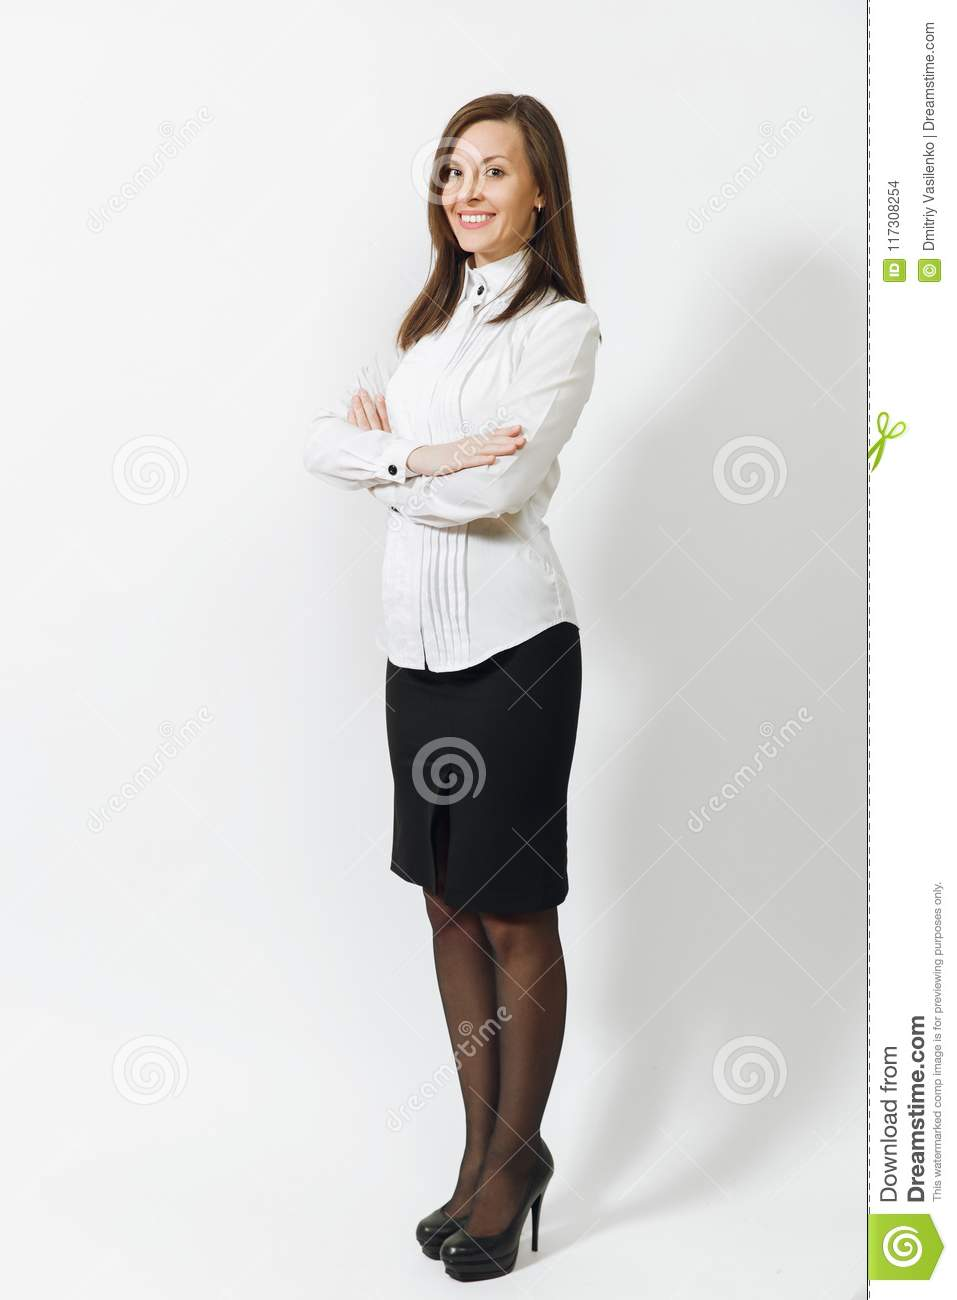 Beautiful caucasian young brown-hair business woman isolated on white background. Manager or worker. Copy space advertisement